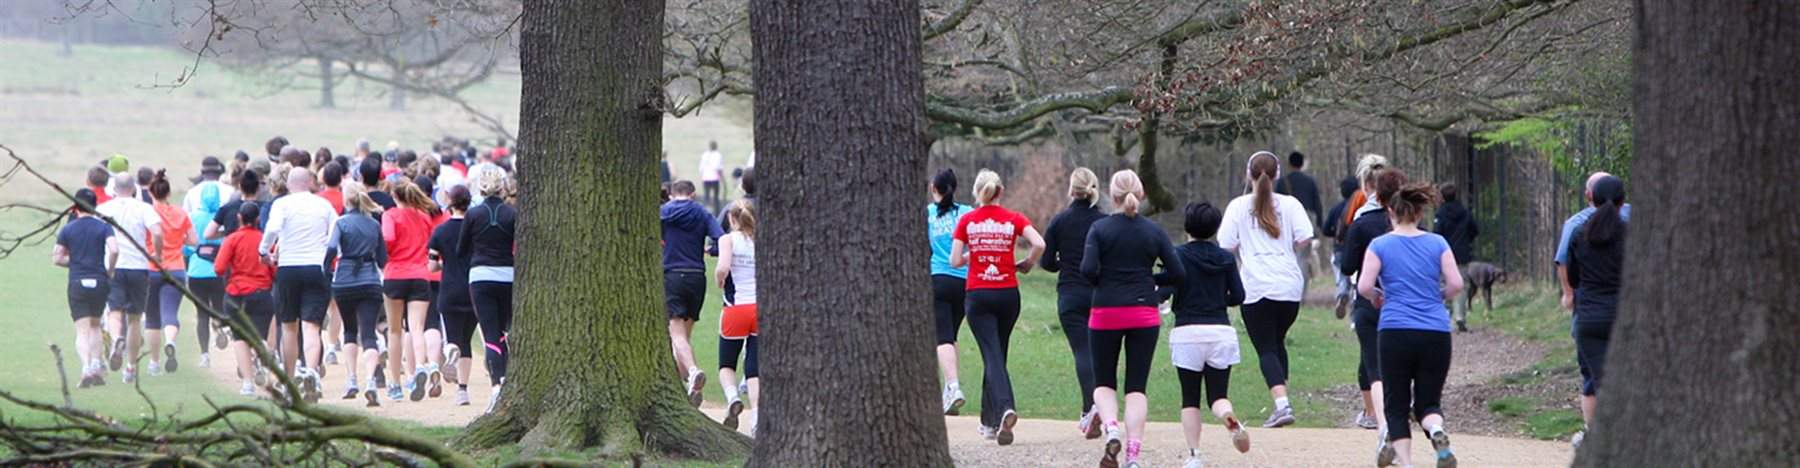 Run Richmond Park 5k & 10k Dec-8 2018